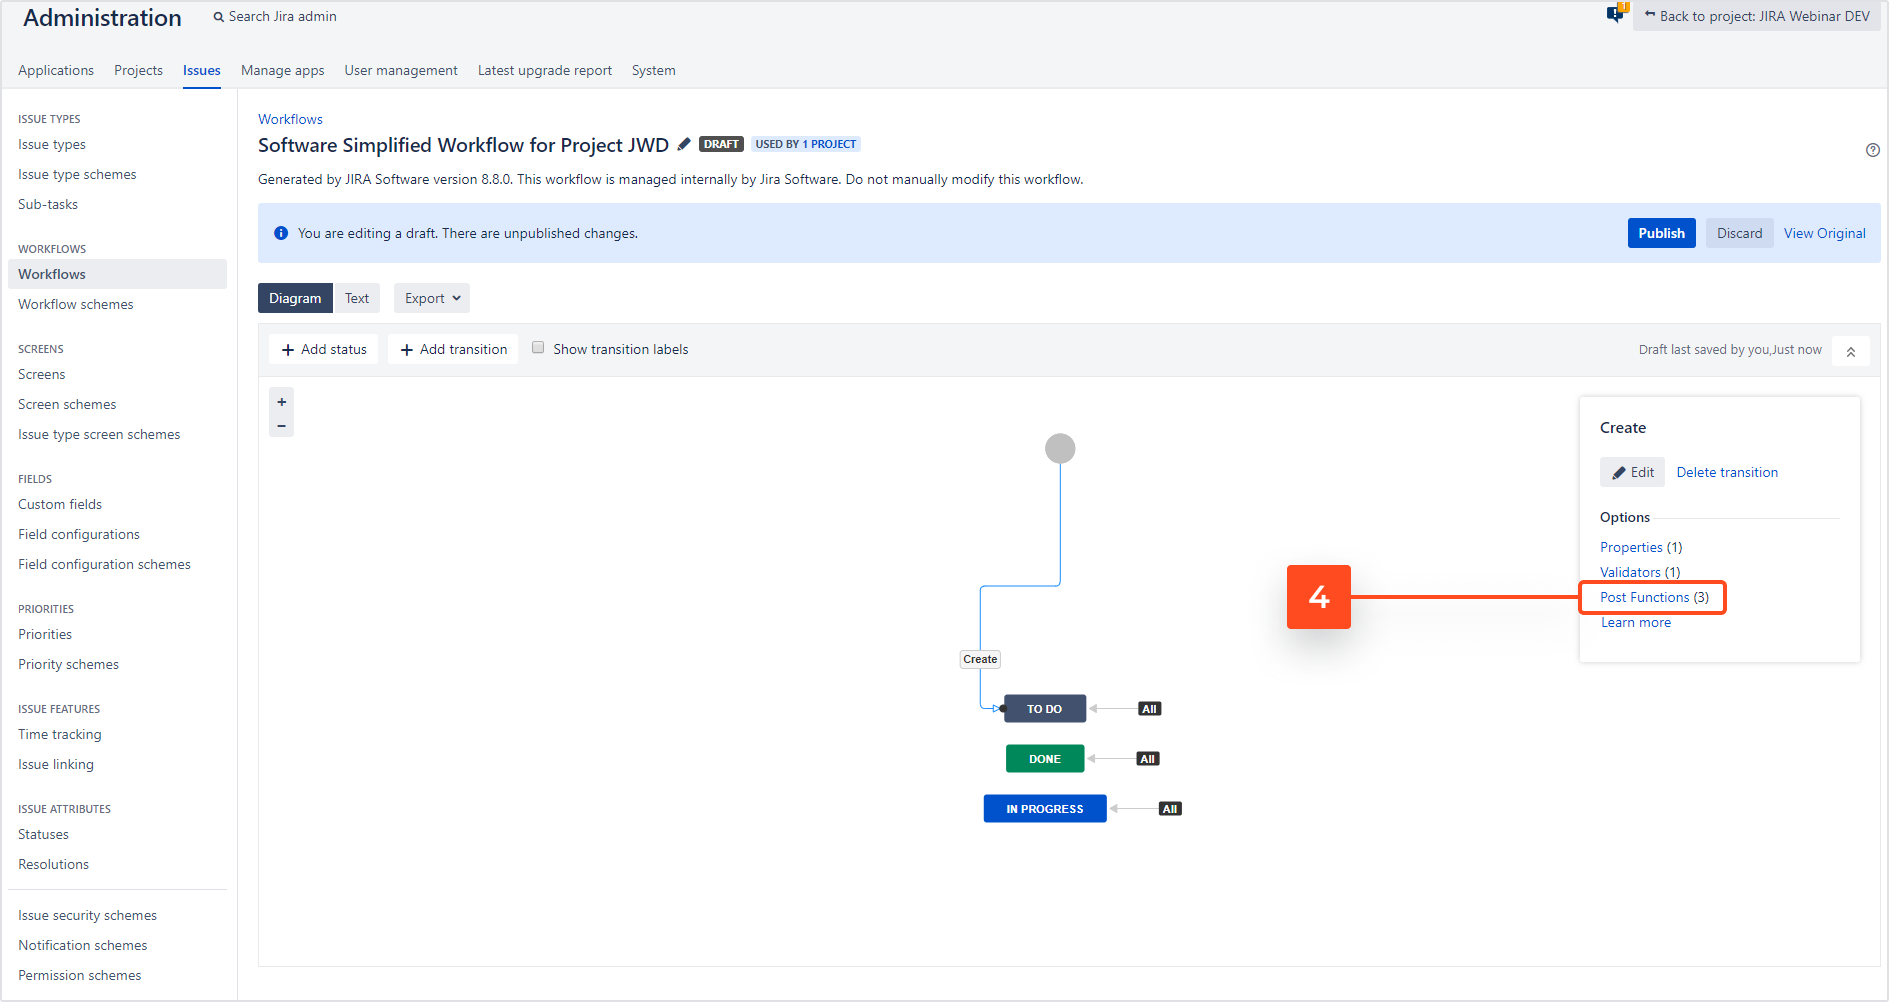 Issue Templates for Jira - Create Structure: Add Post Function